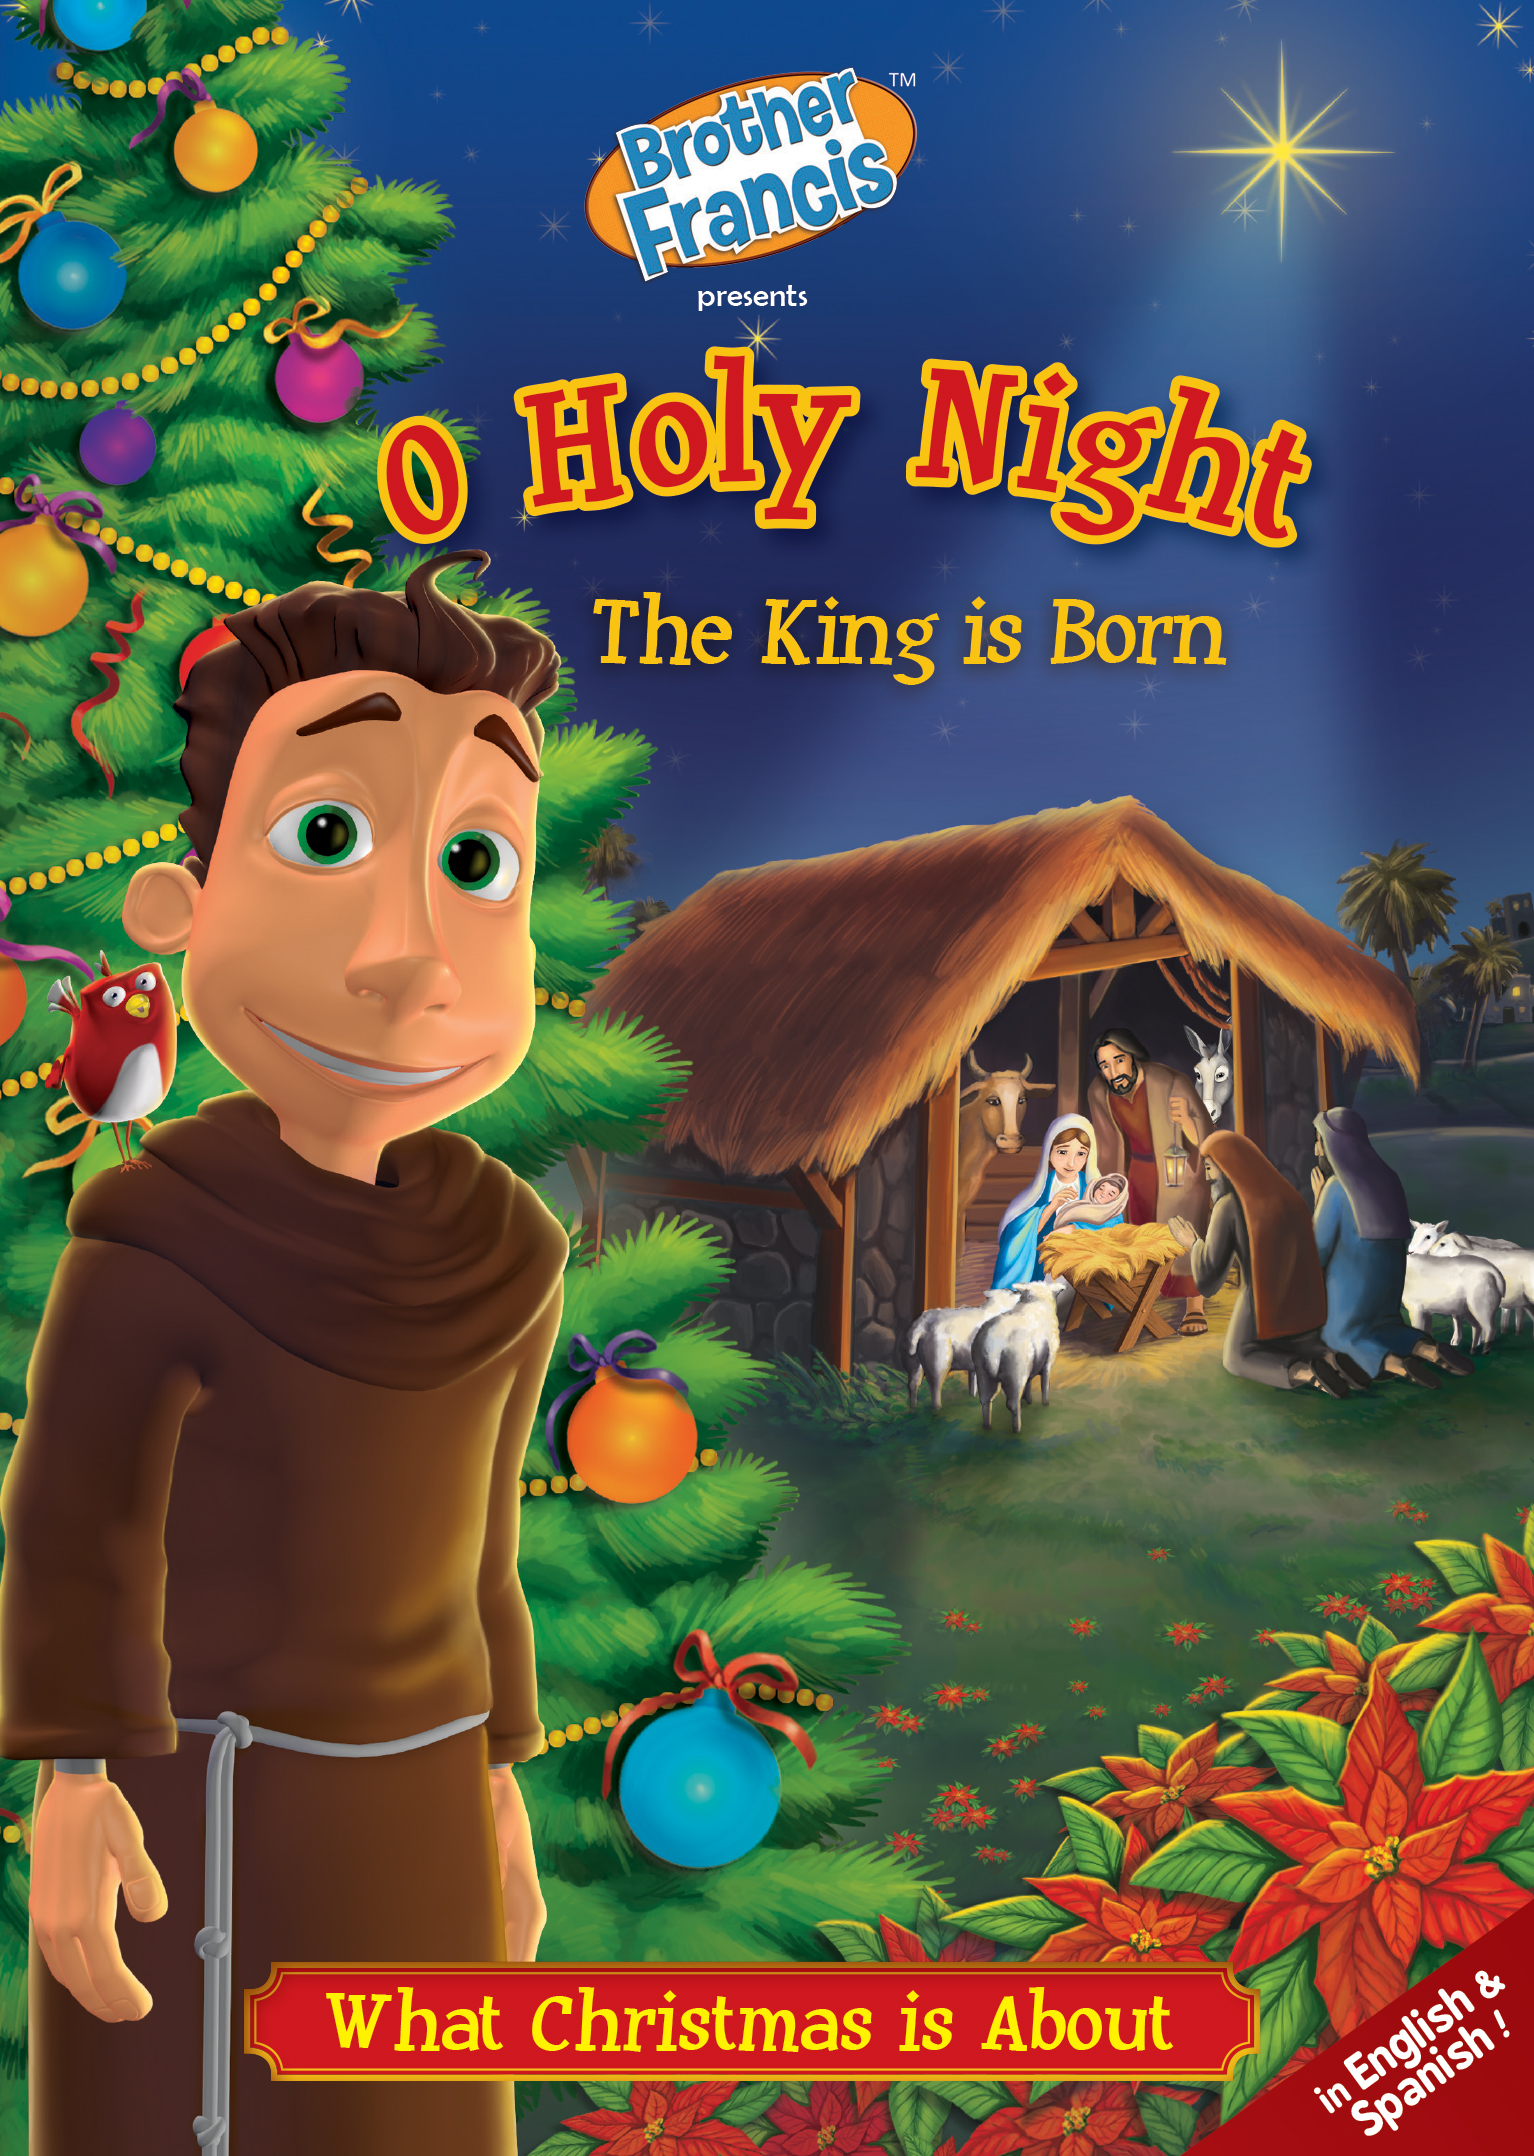 Brother Francis Episode 7: O Holy Night The King is Born